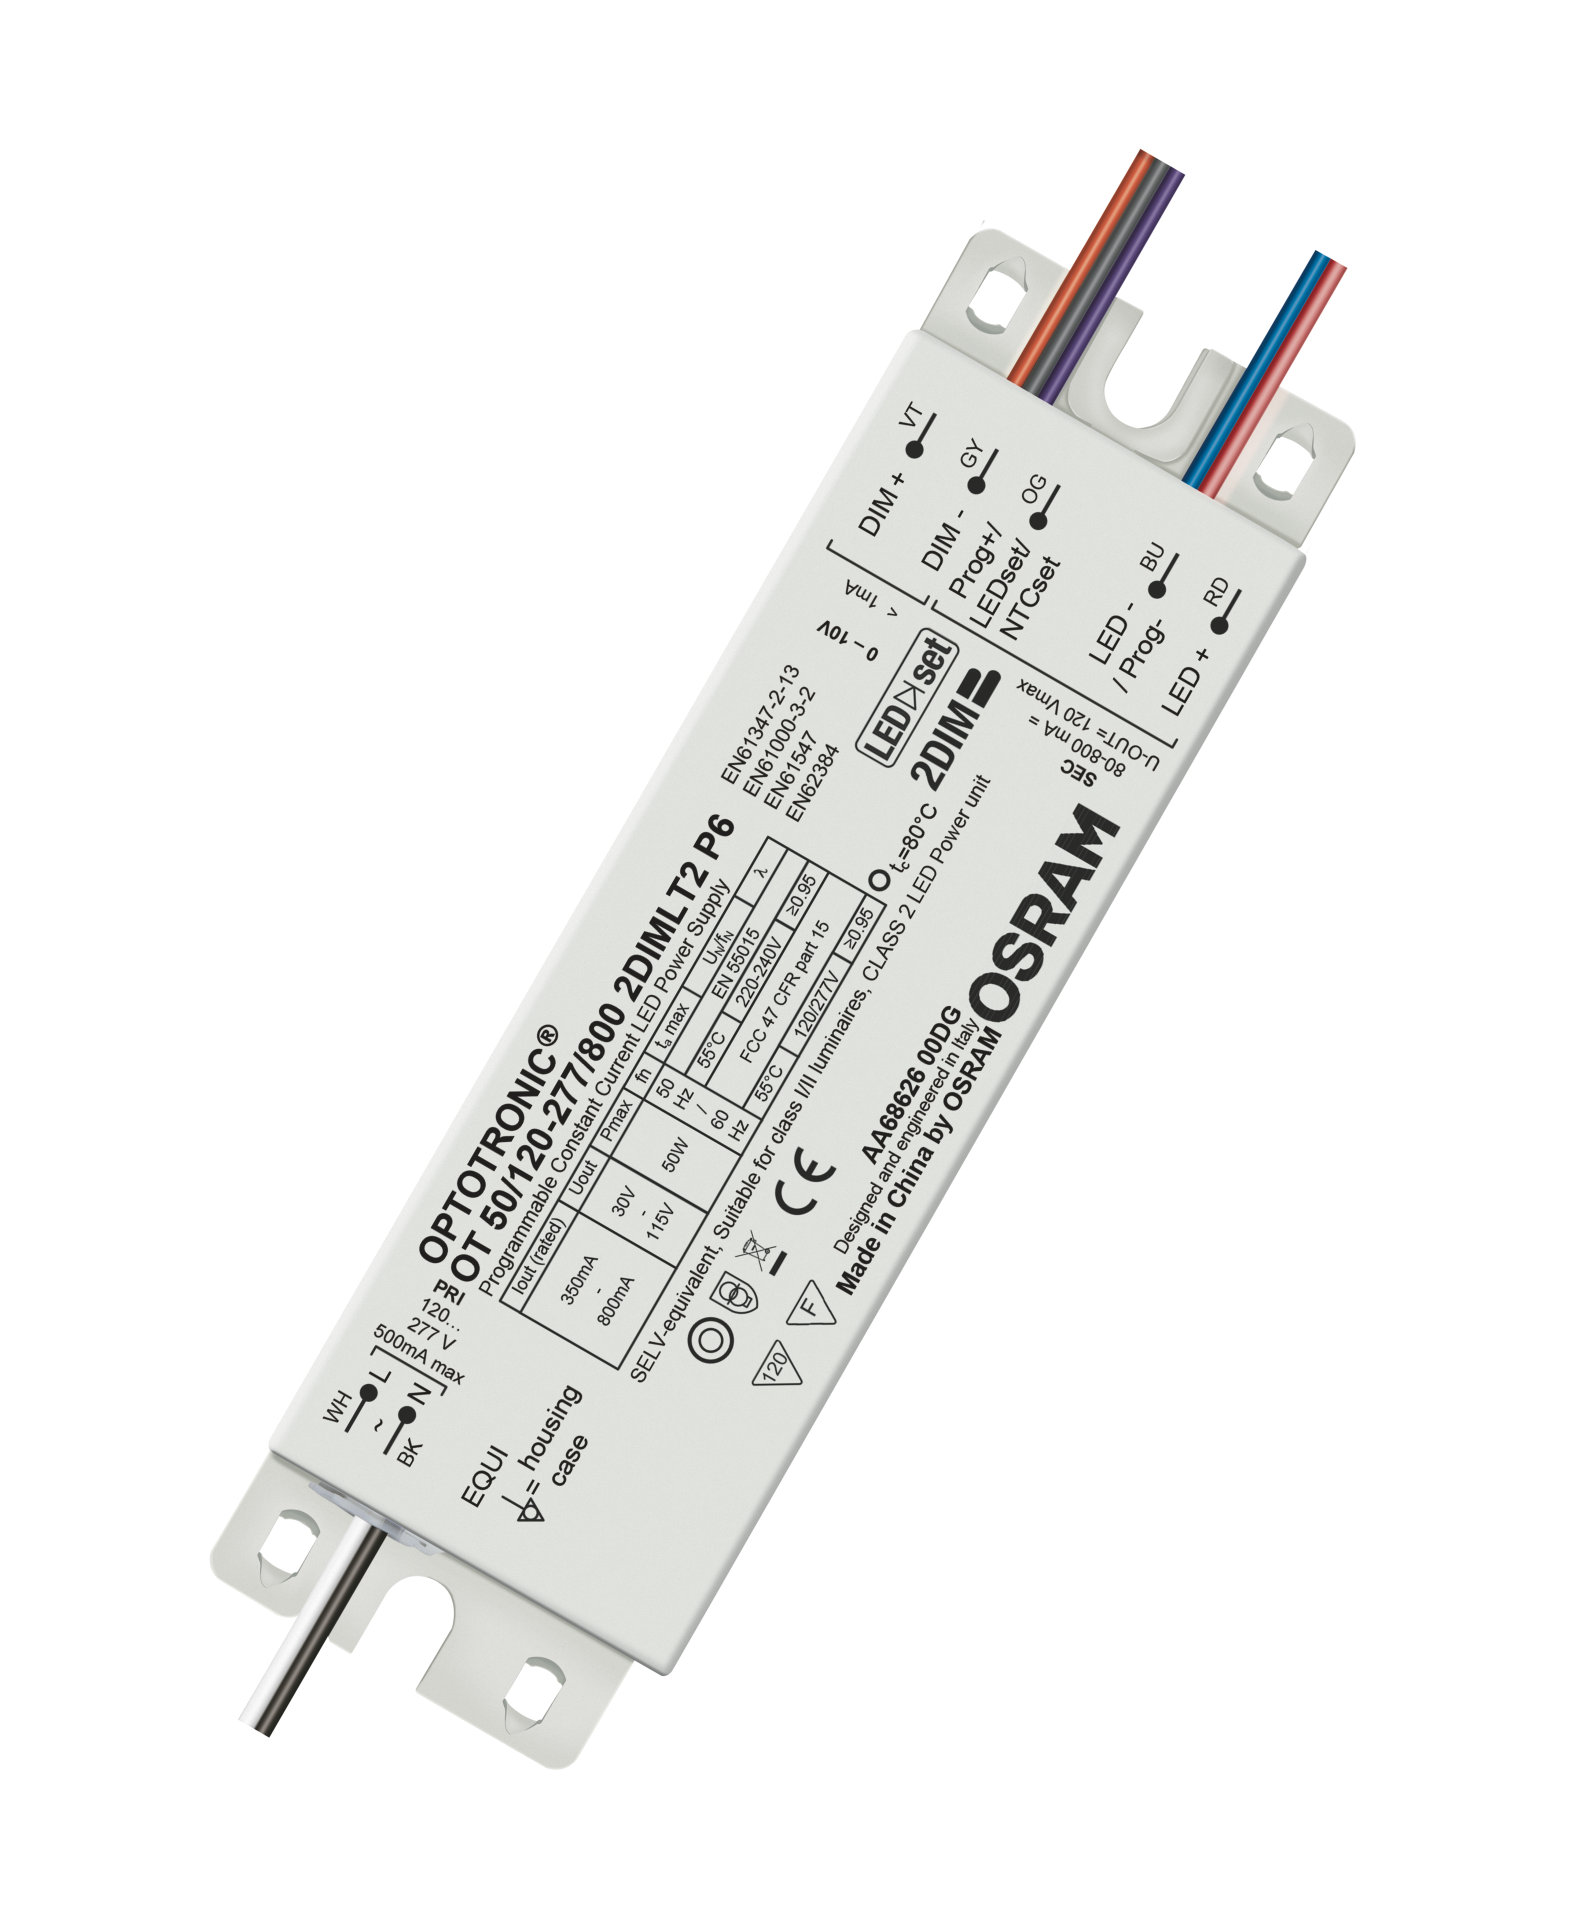 OT 2DIM IP64 Outdoor 0…10 V, AstroDIM – constant current LED drivers